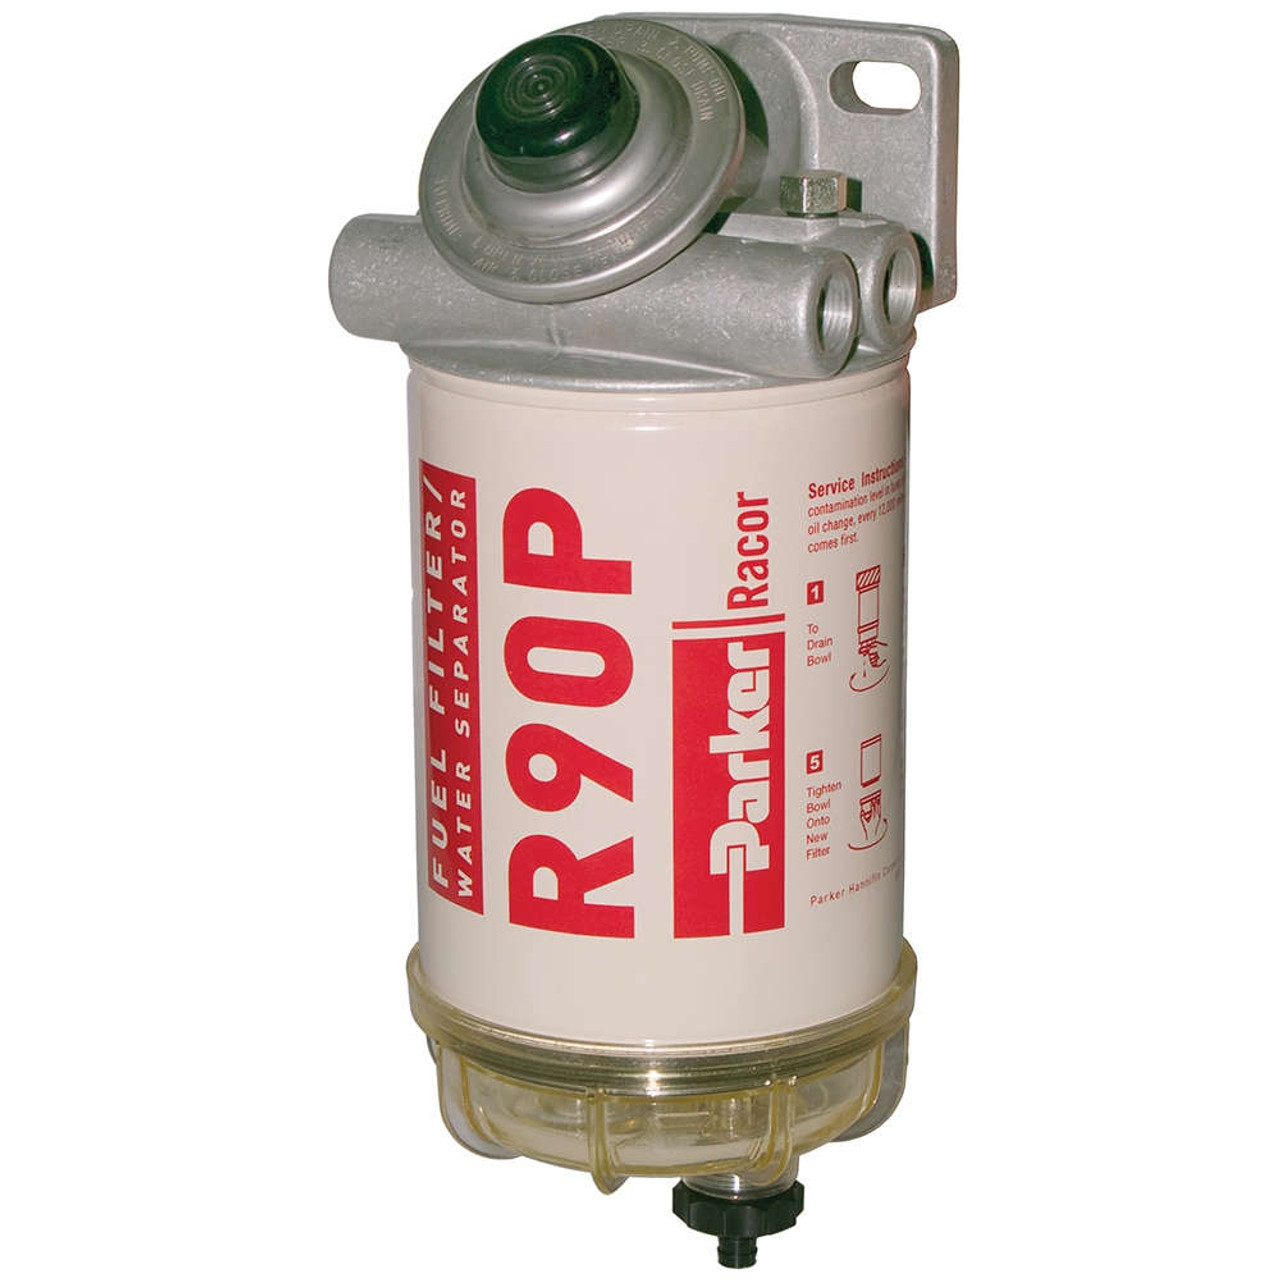 Waterproof Fuel Filter Wiring Library Donaldson P553203 Racor 400 Series 90 Gph Diesel Spin On 30 Micron 6